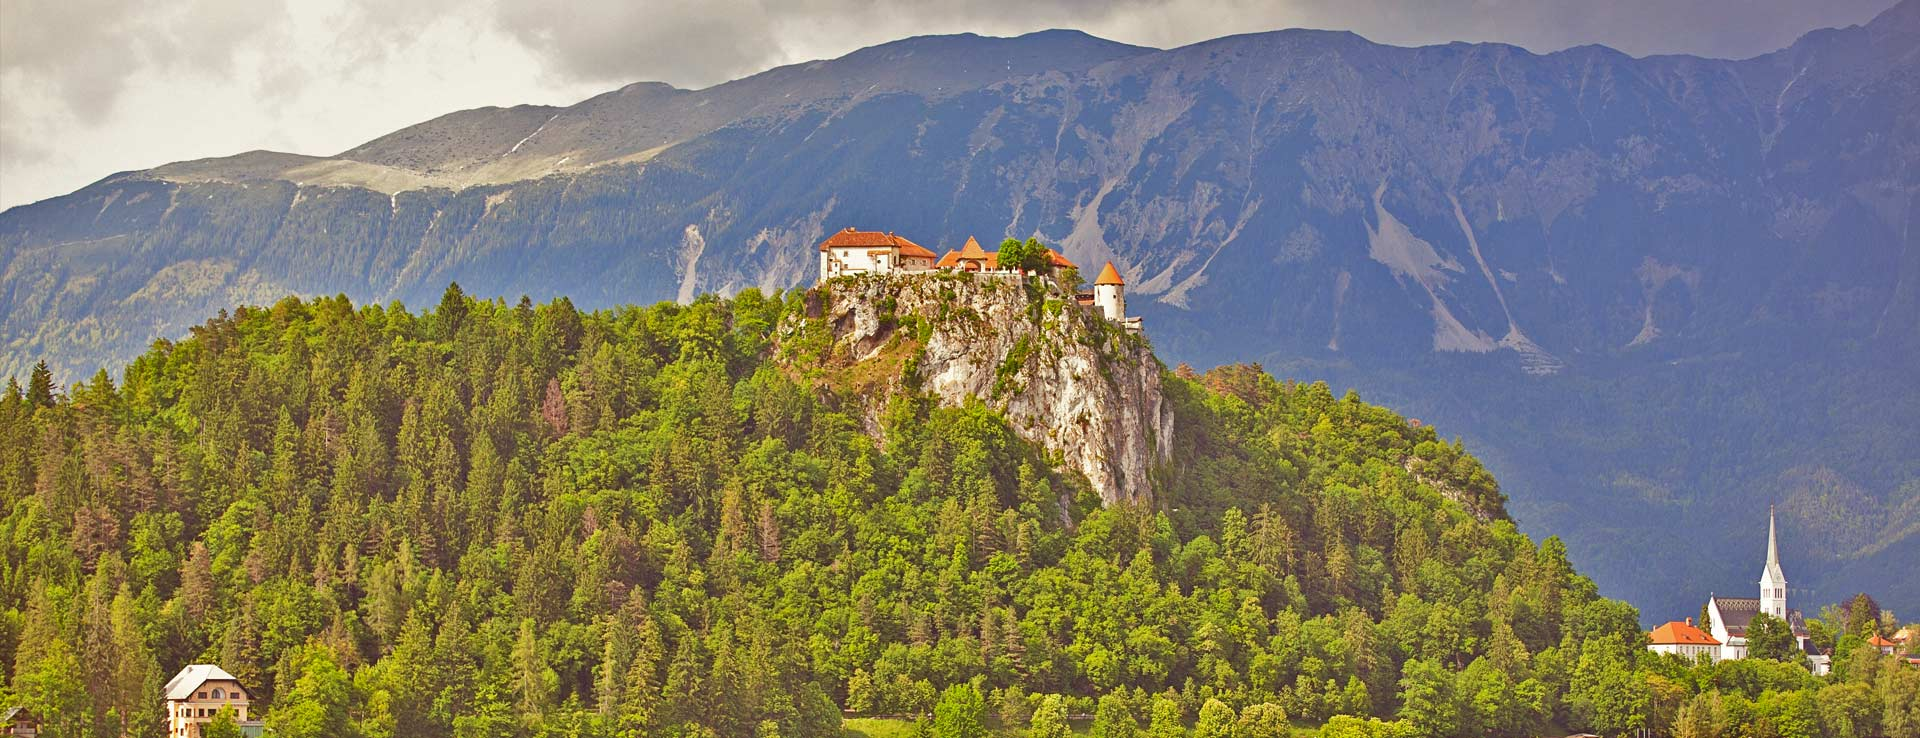 Slovenia – 15 best tourist attractions